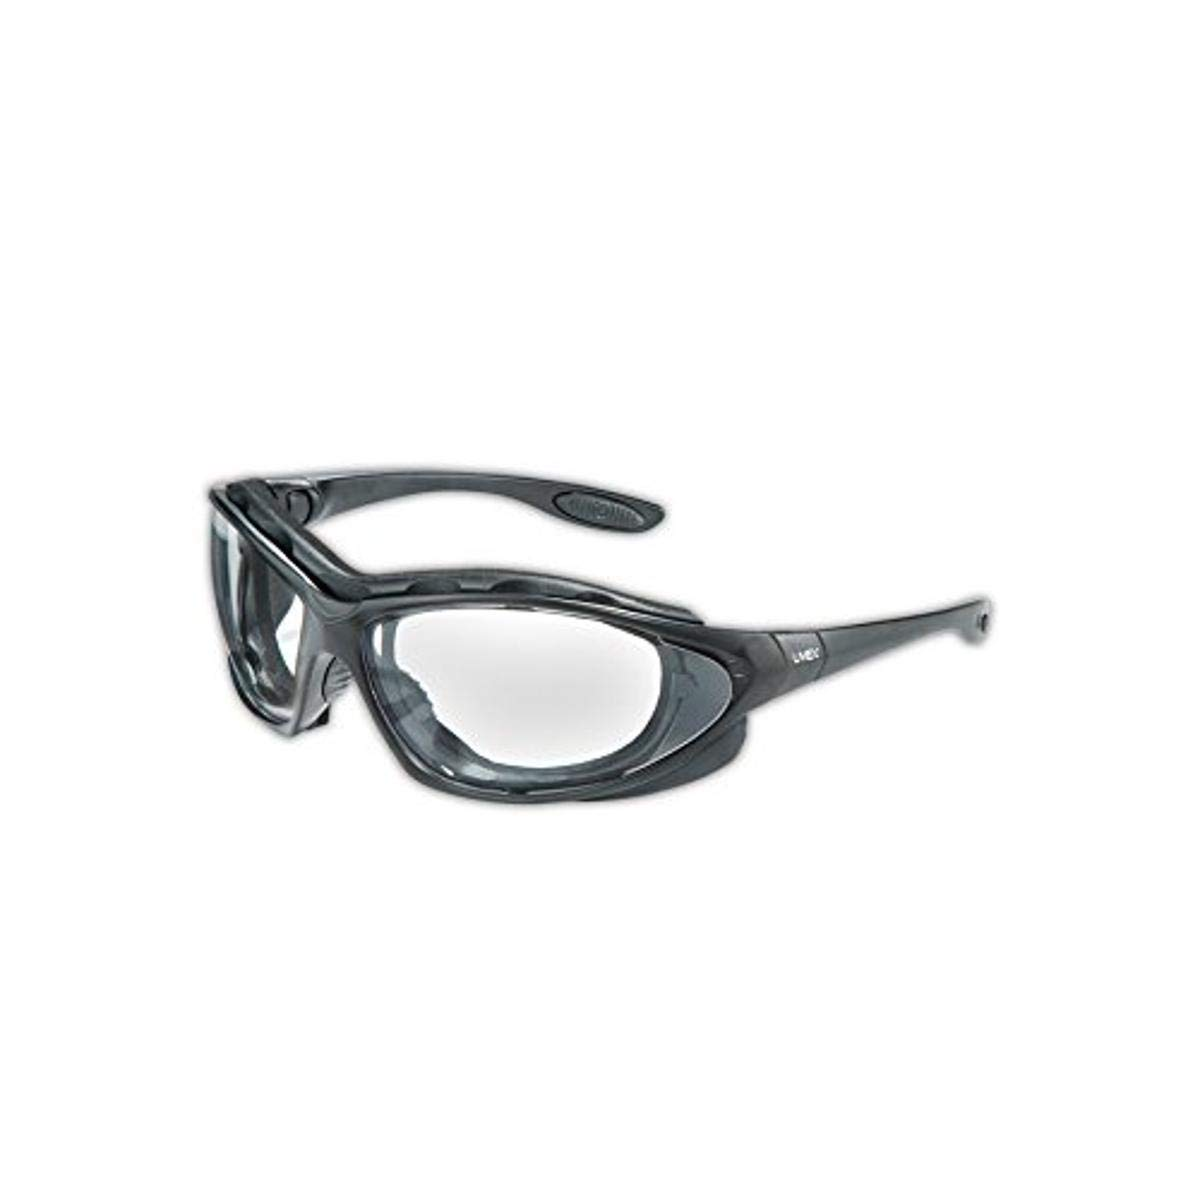 Sales of SALE items from new works Honeywell S0600 Uvex Seismic Sealed High-Performance Eyewear St Minneapolis Mall